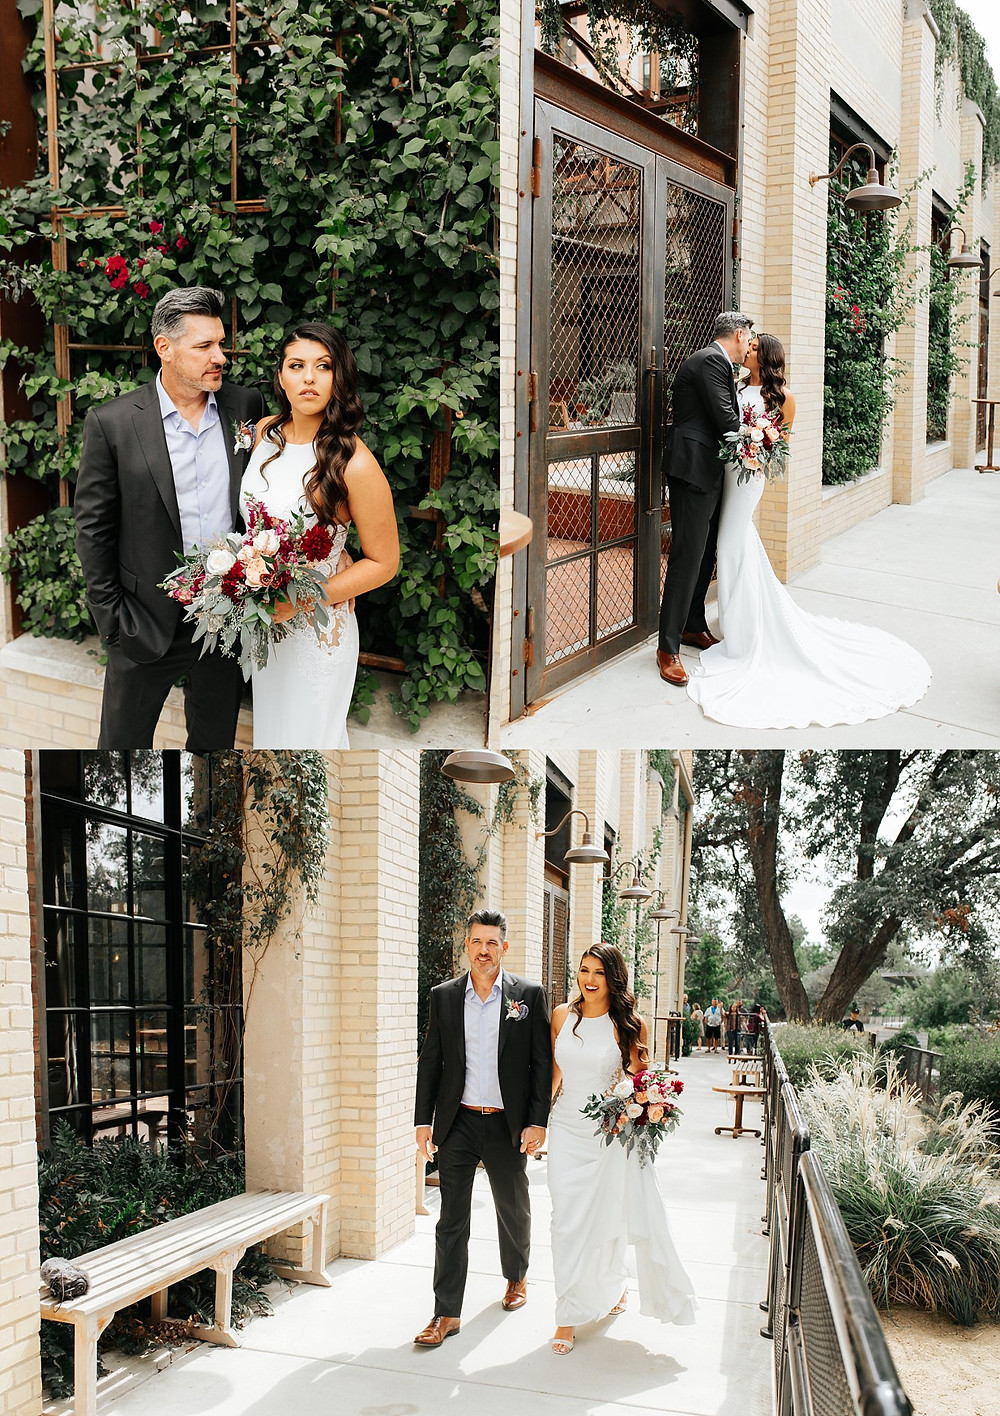 Hotel Emma Wedding in San Antonio, TX by Snap Chic Photography | San Antonio + Boerne Wedding Photographer